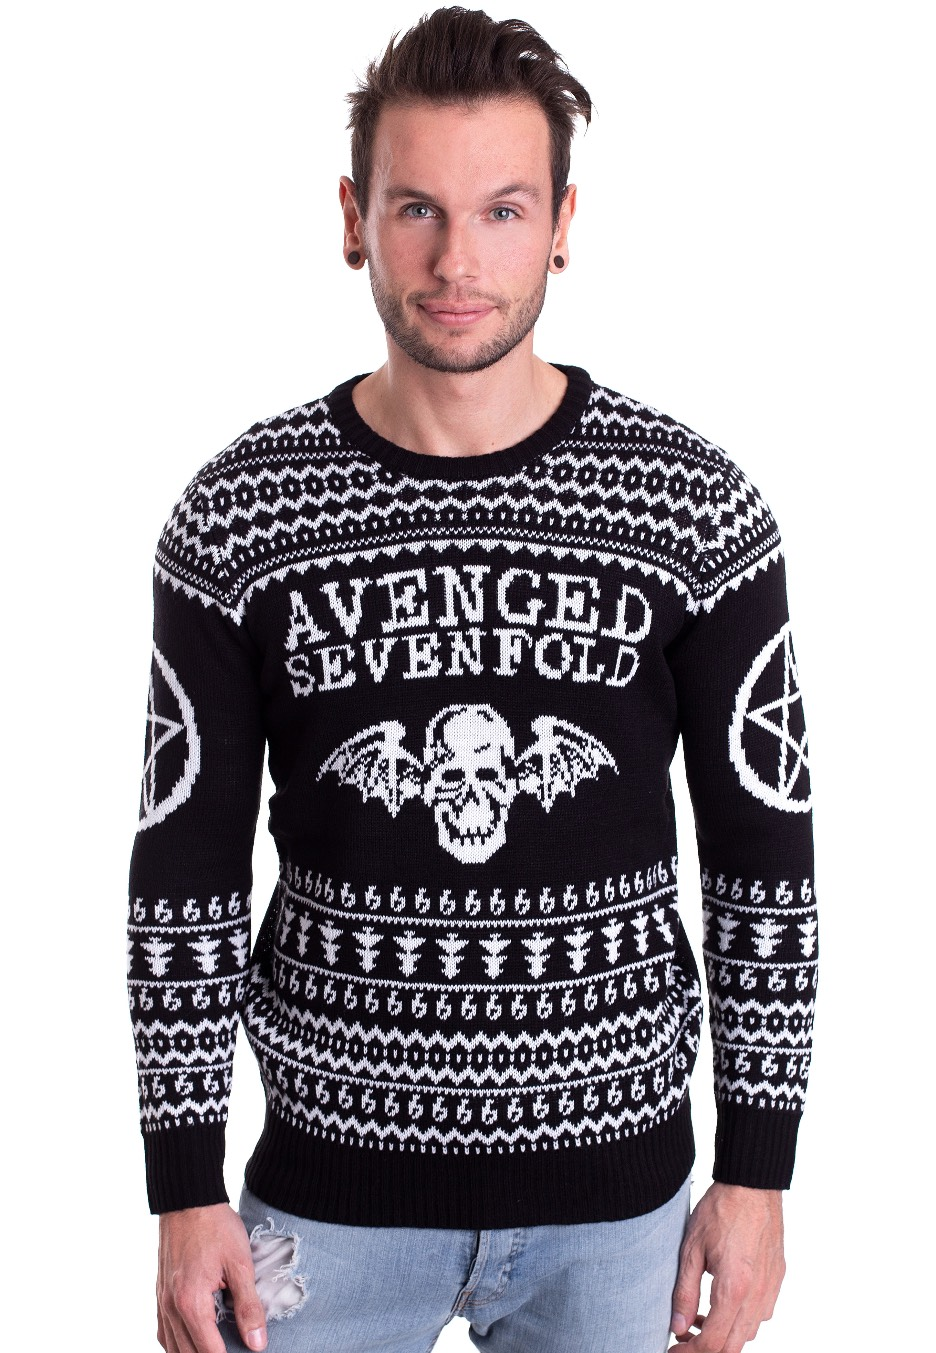 Avenged Sevenfold - Ugly Christmas - Sweater - Official Hard Rock ...